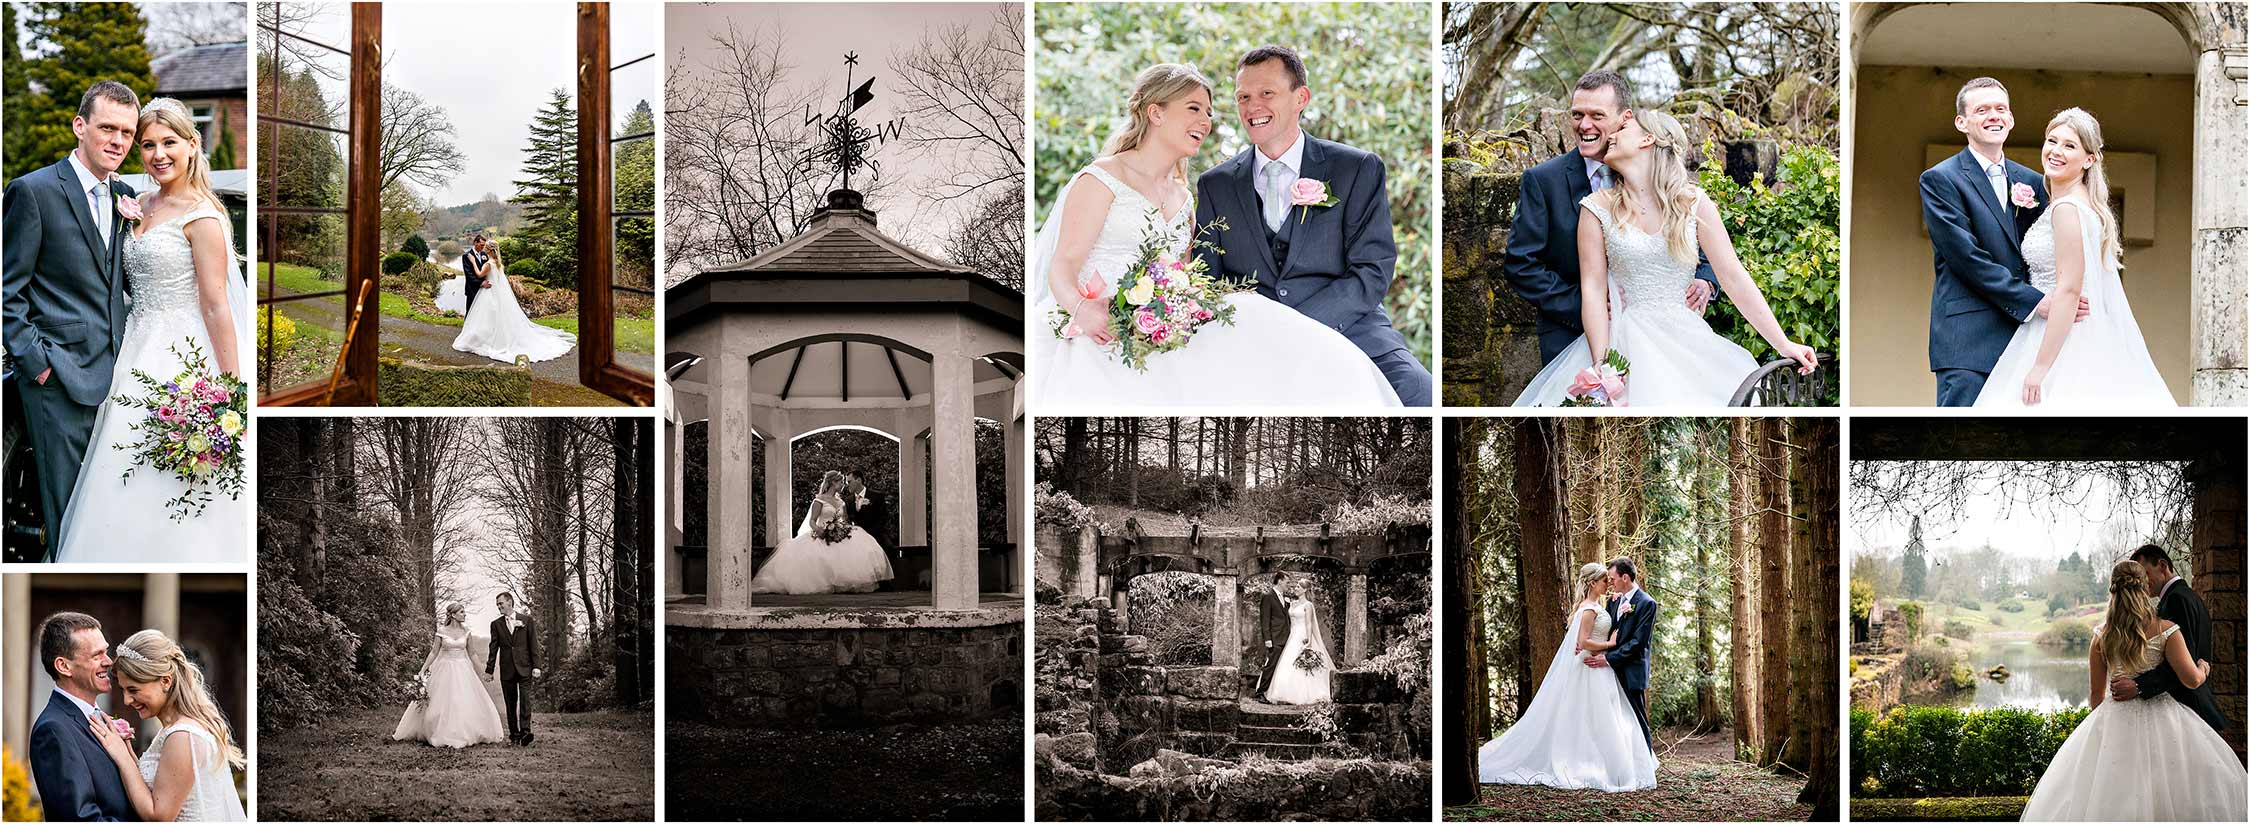 Cheshire Wedding Photographer - Kim Shaw